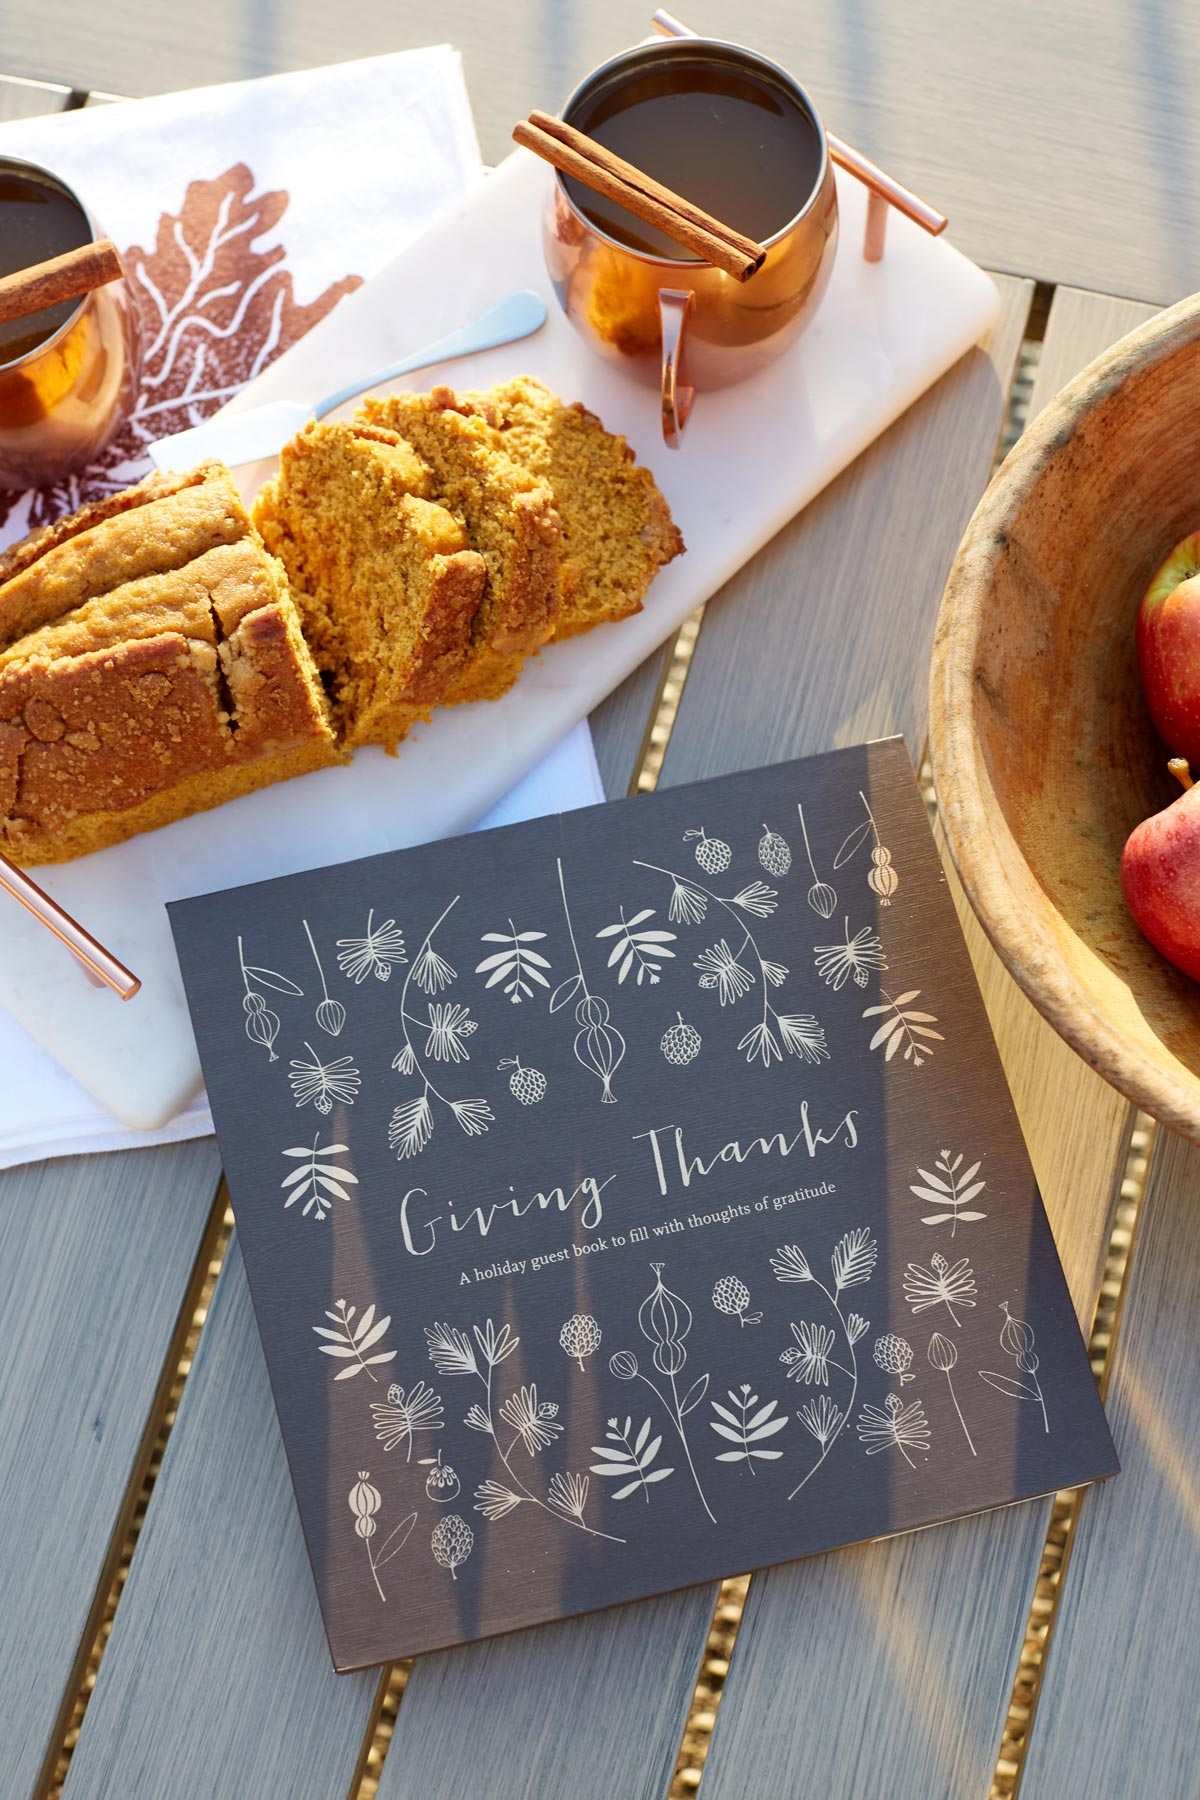 Food lifestyle photo of a loaf of pumpkin bread on a white tray alongside copper mugs filled with spiced cider